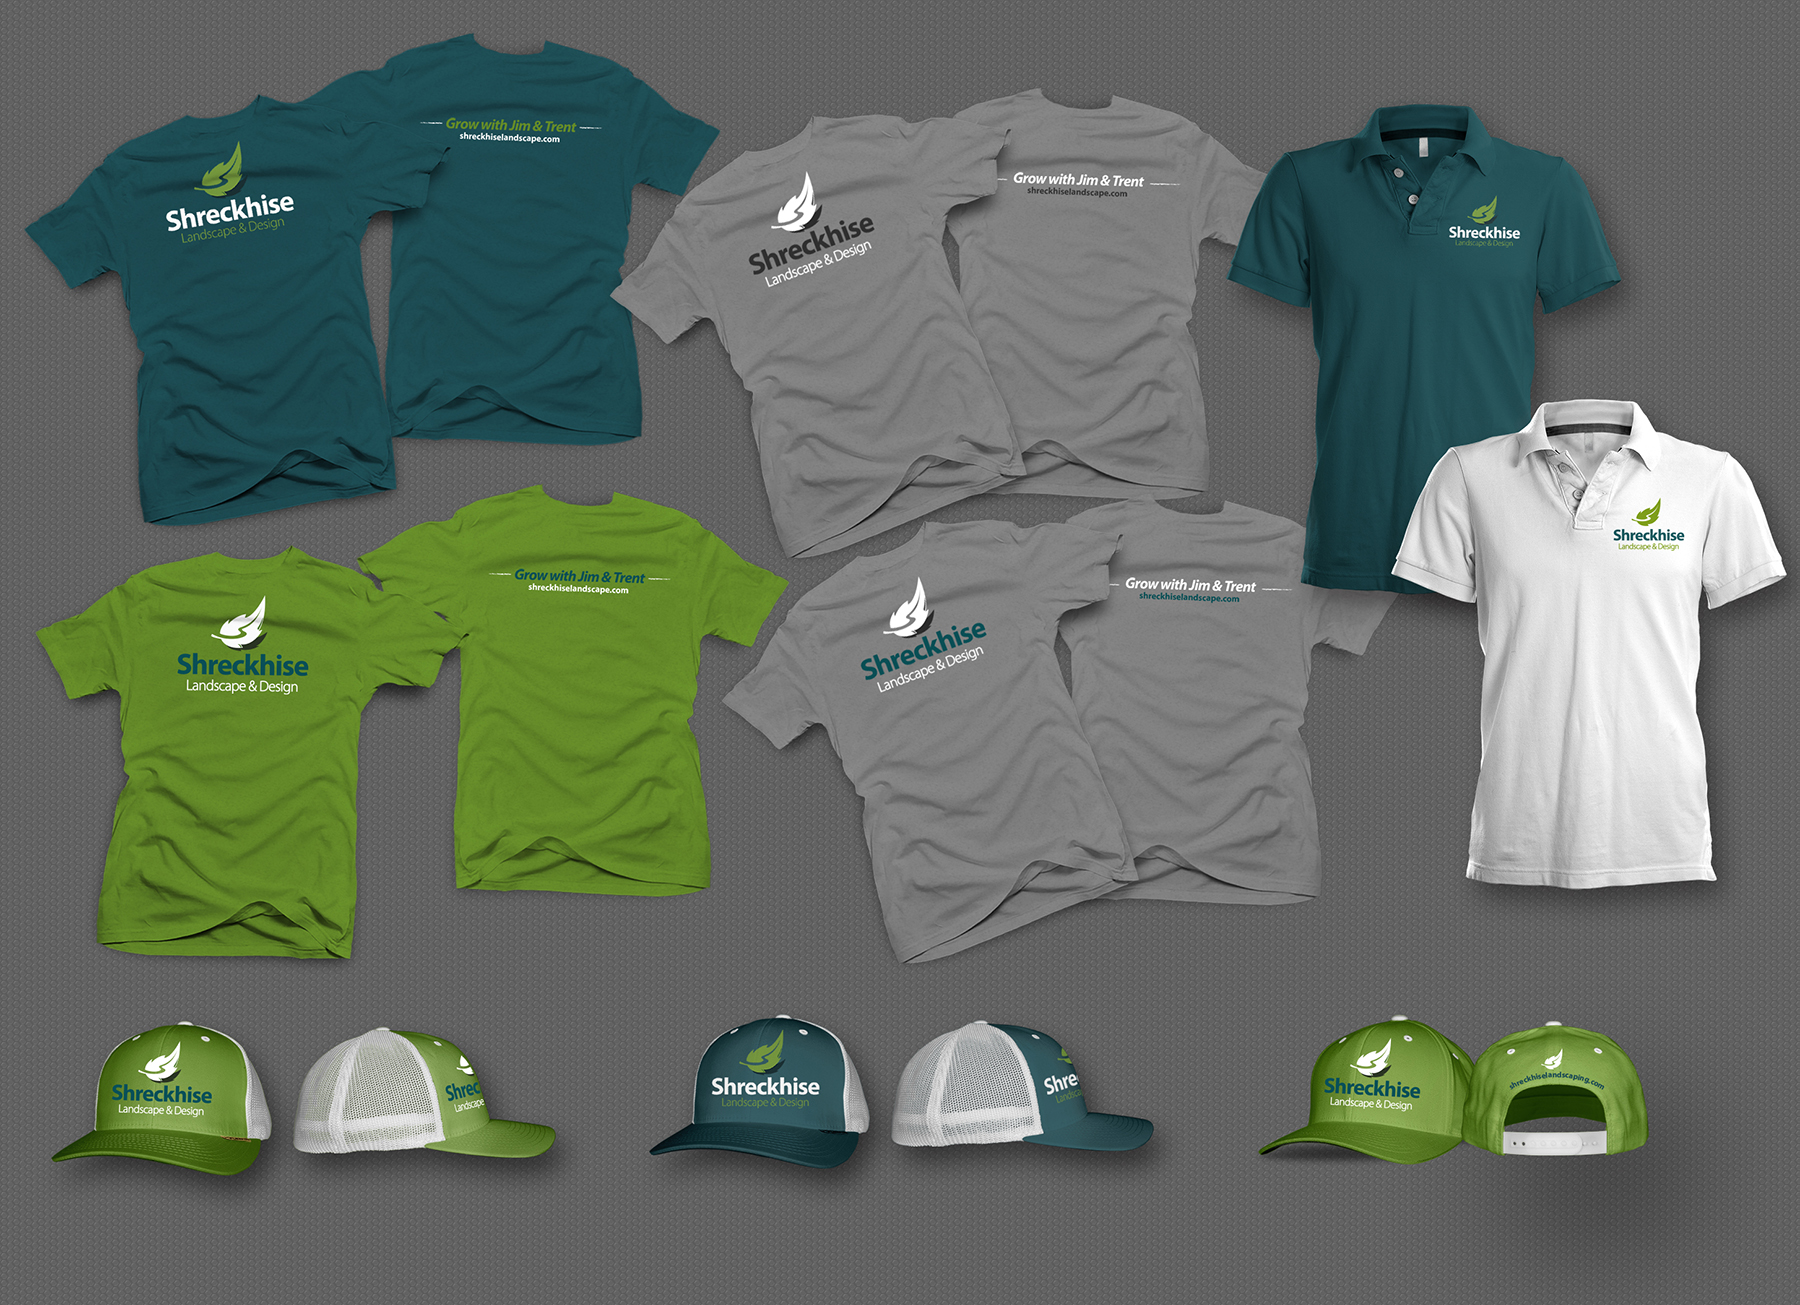 shreckhise Promotional Product Design